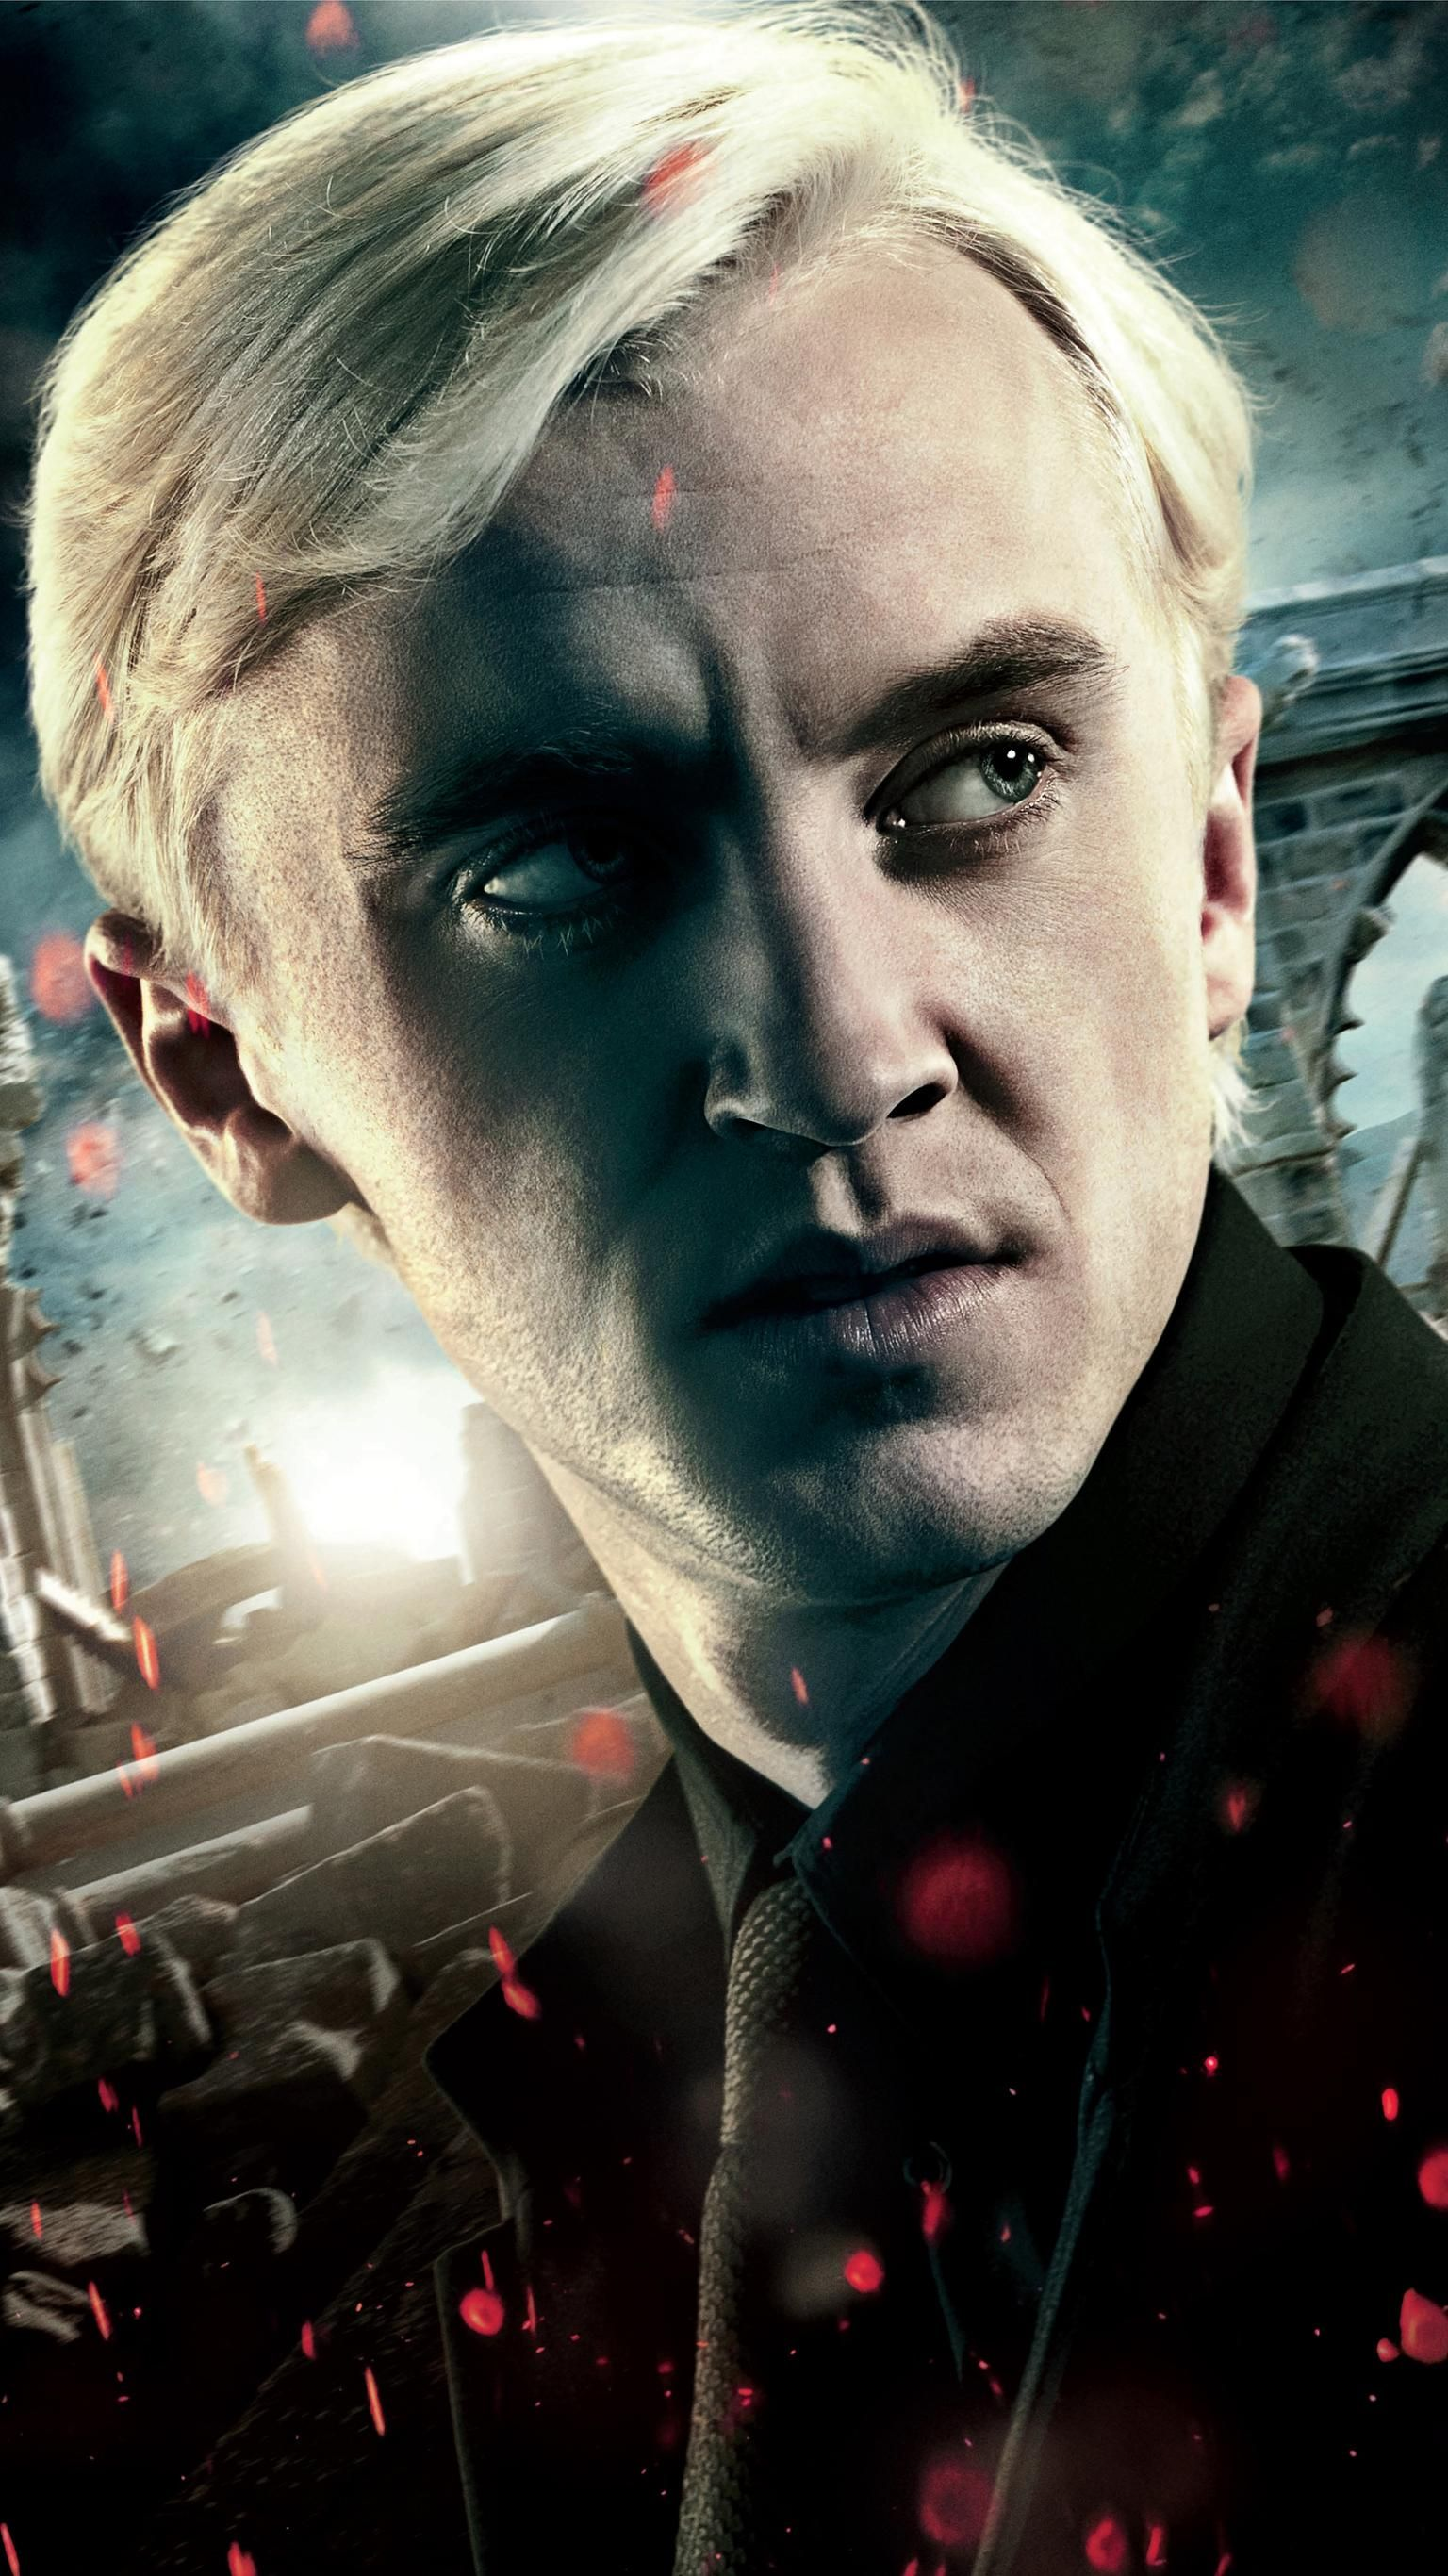 Harry Potter and the Deathly Hallows: Part 2 (2011